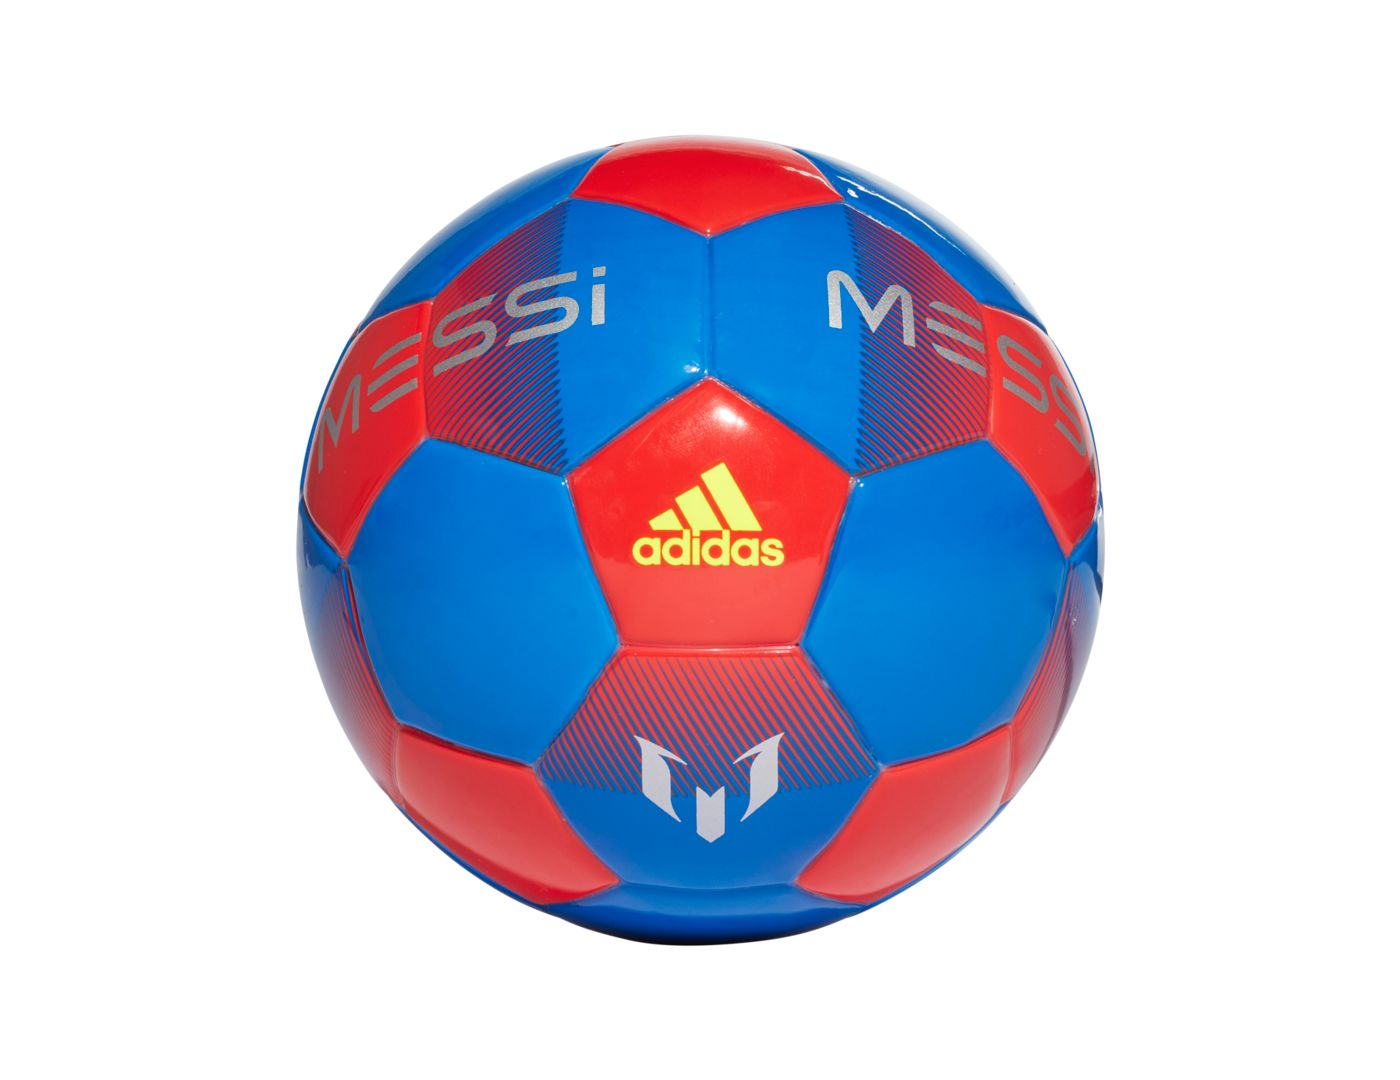 adidas Messi Mini Soccer Ball